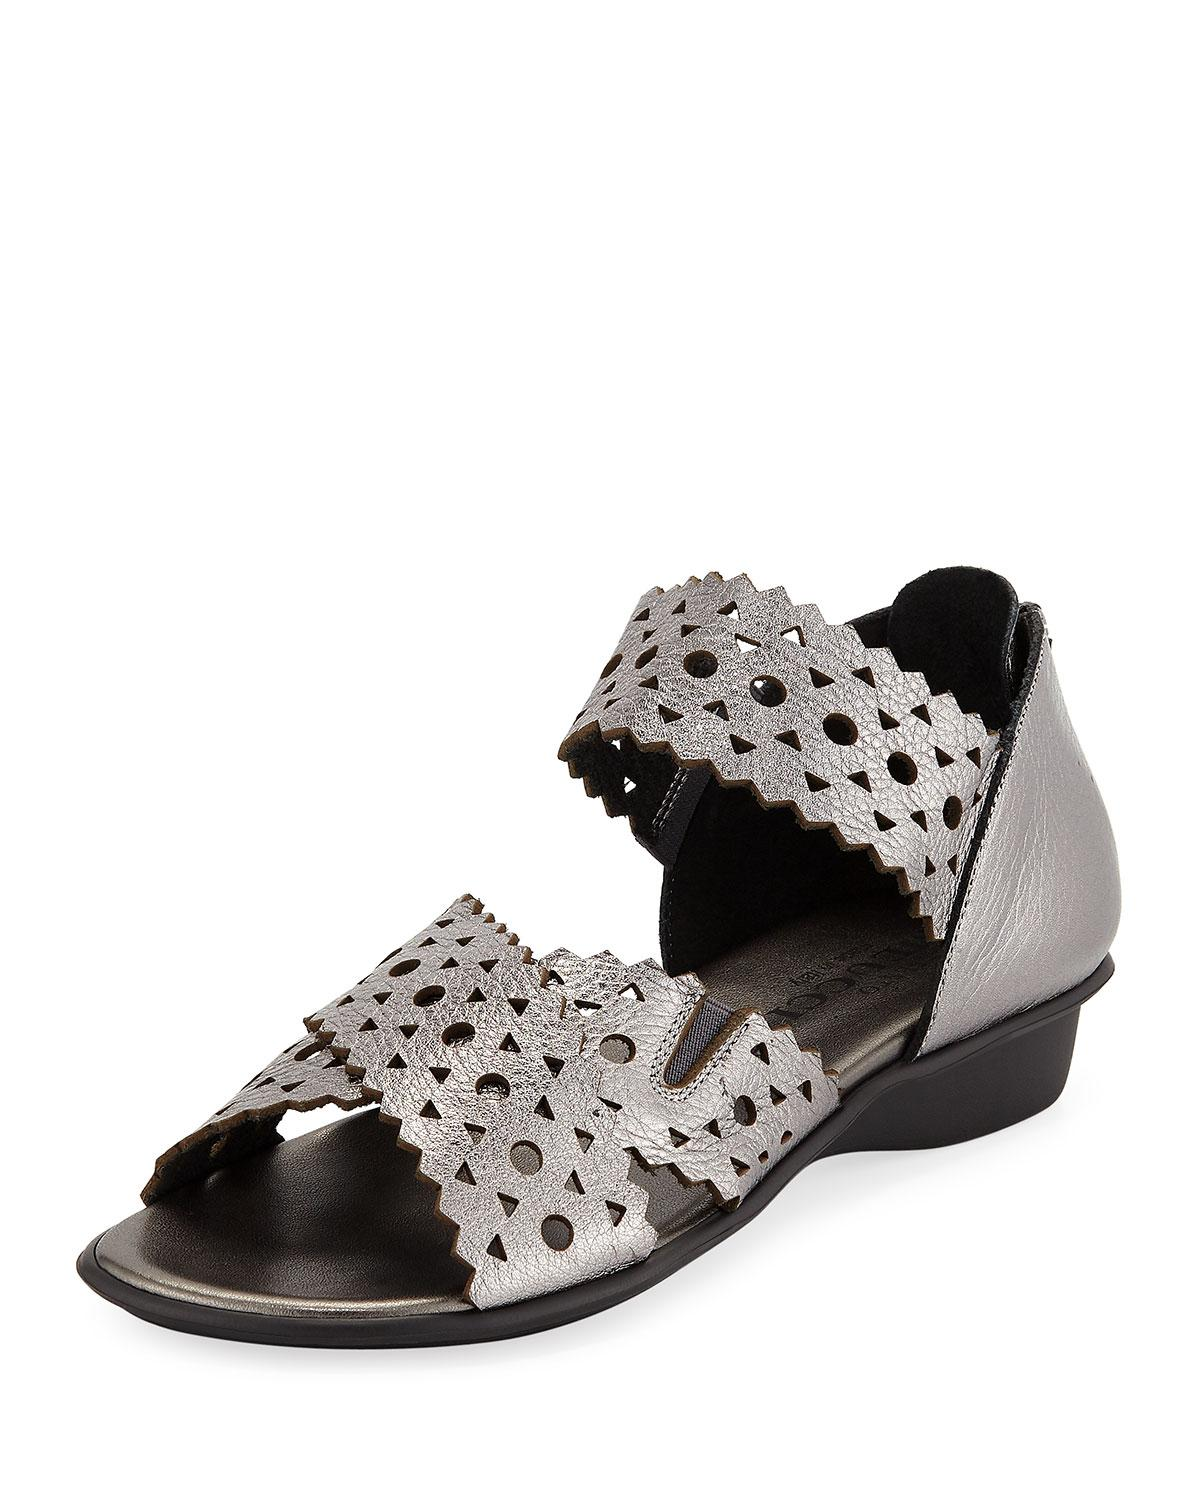 a2b97802525 Sesto Meucci Evie Perforated Comfort Sandal In Acciaio